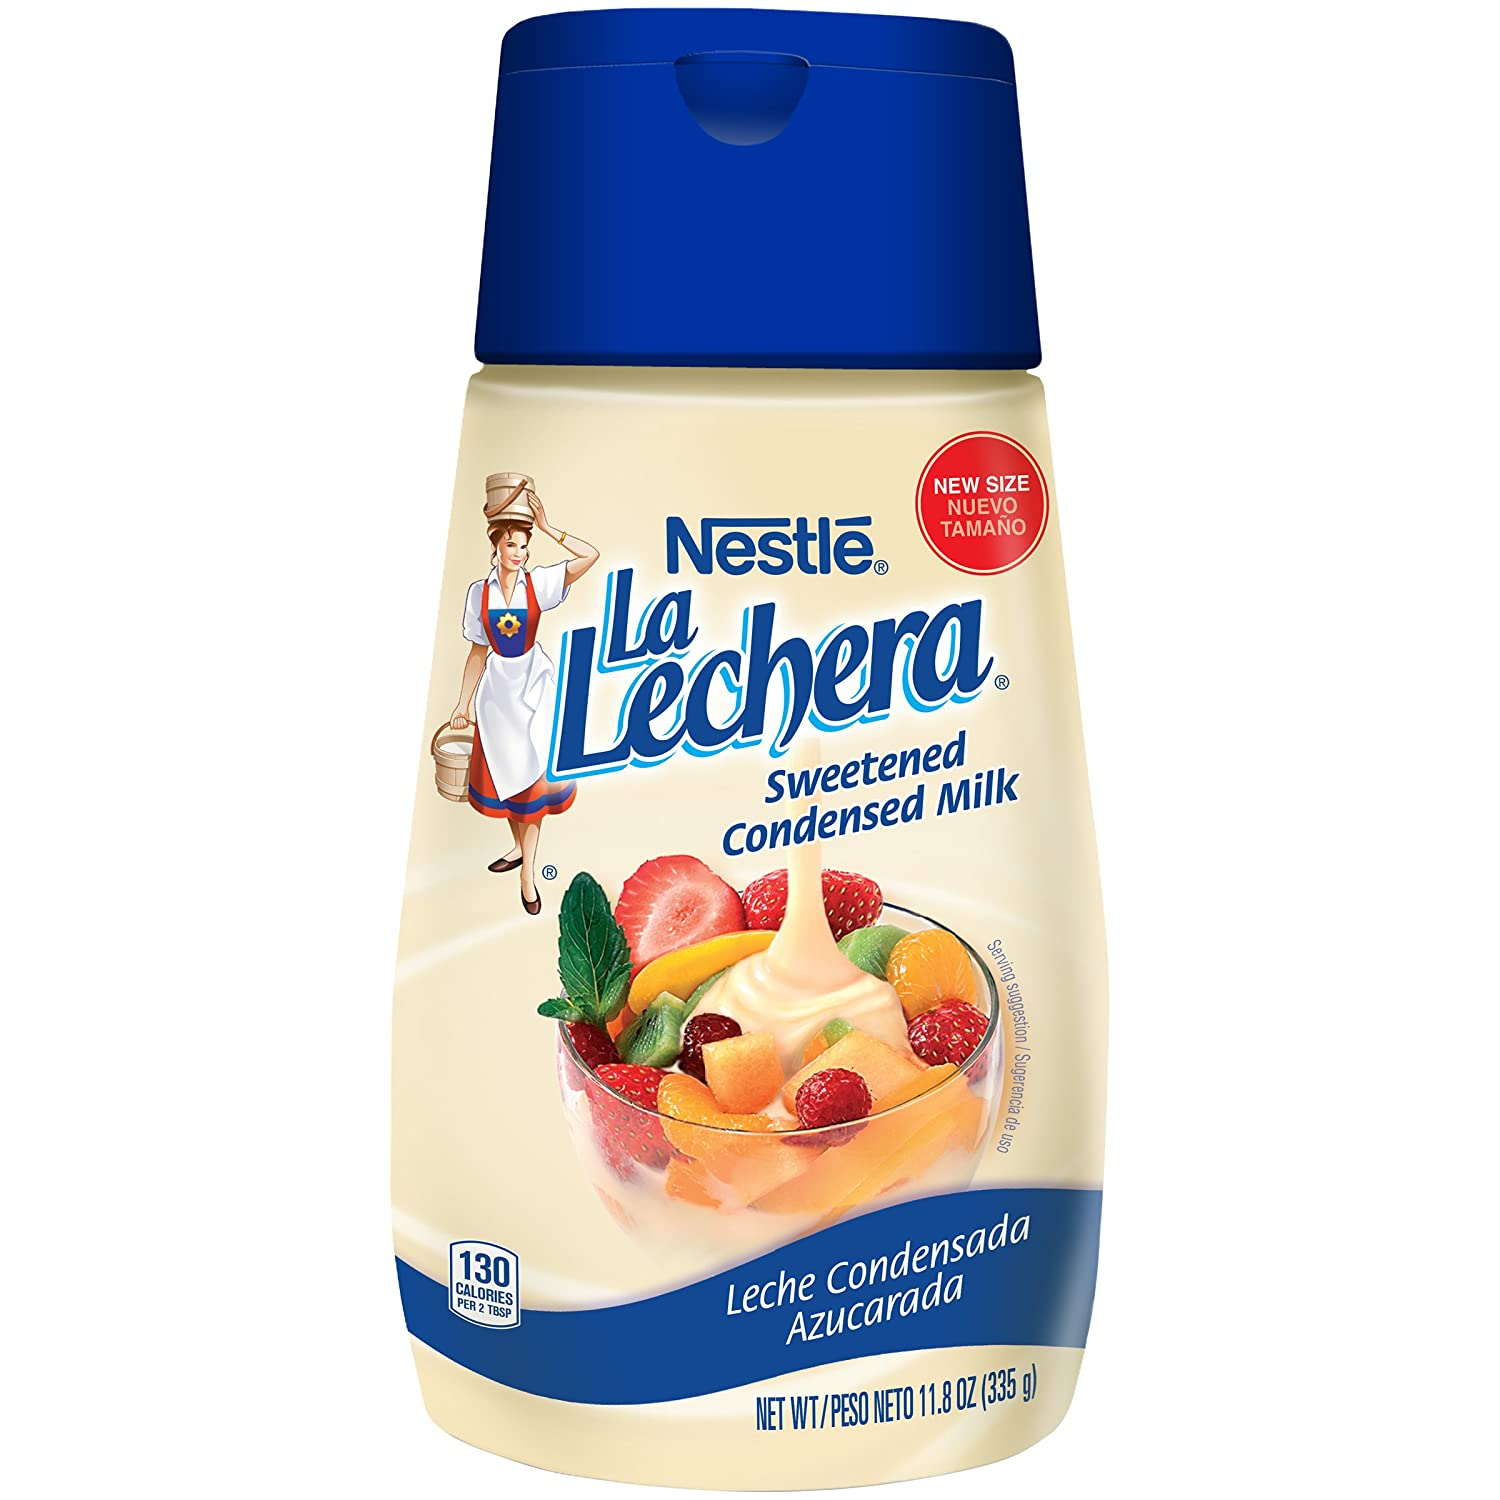 Nestle La Lechera Sweetened Condensed Milk, 11.8 oz (4 pack)